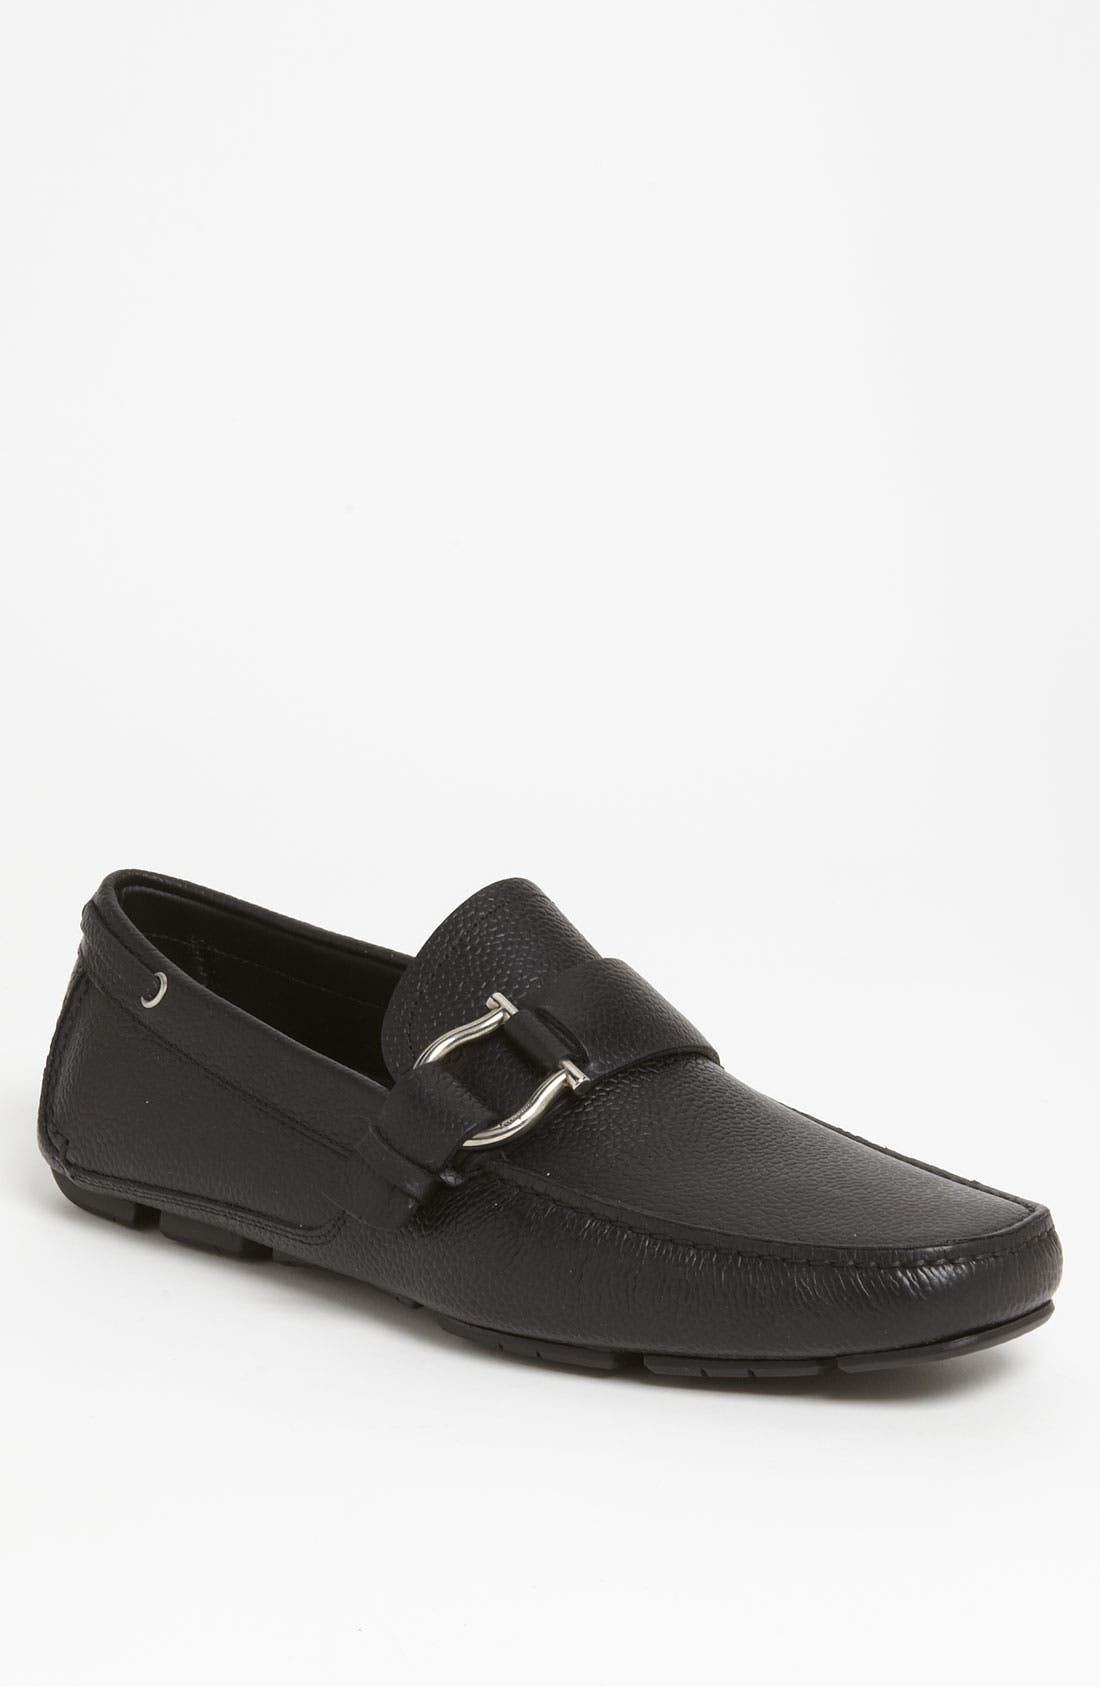 Alternate Image 1 Selected - Salvatore Ferragamo 'Cabo' Driving Moccasin